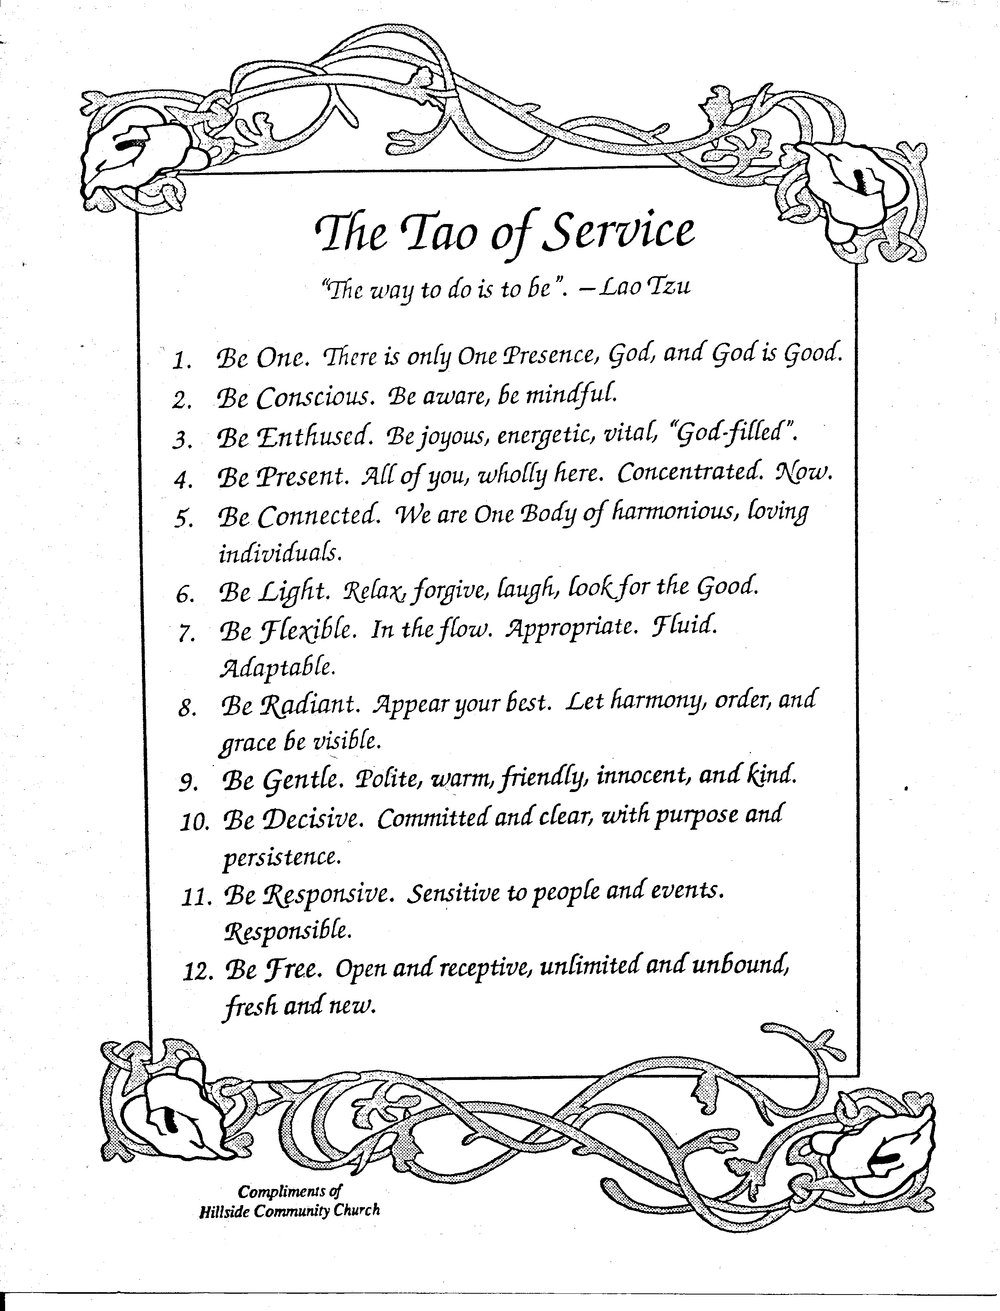 Tao of Service no address.jpg